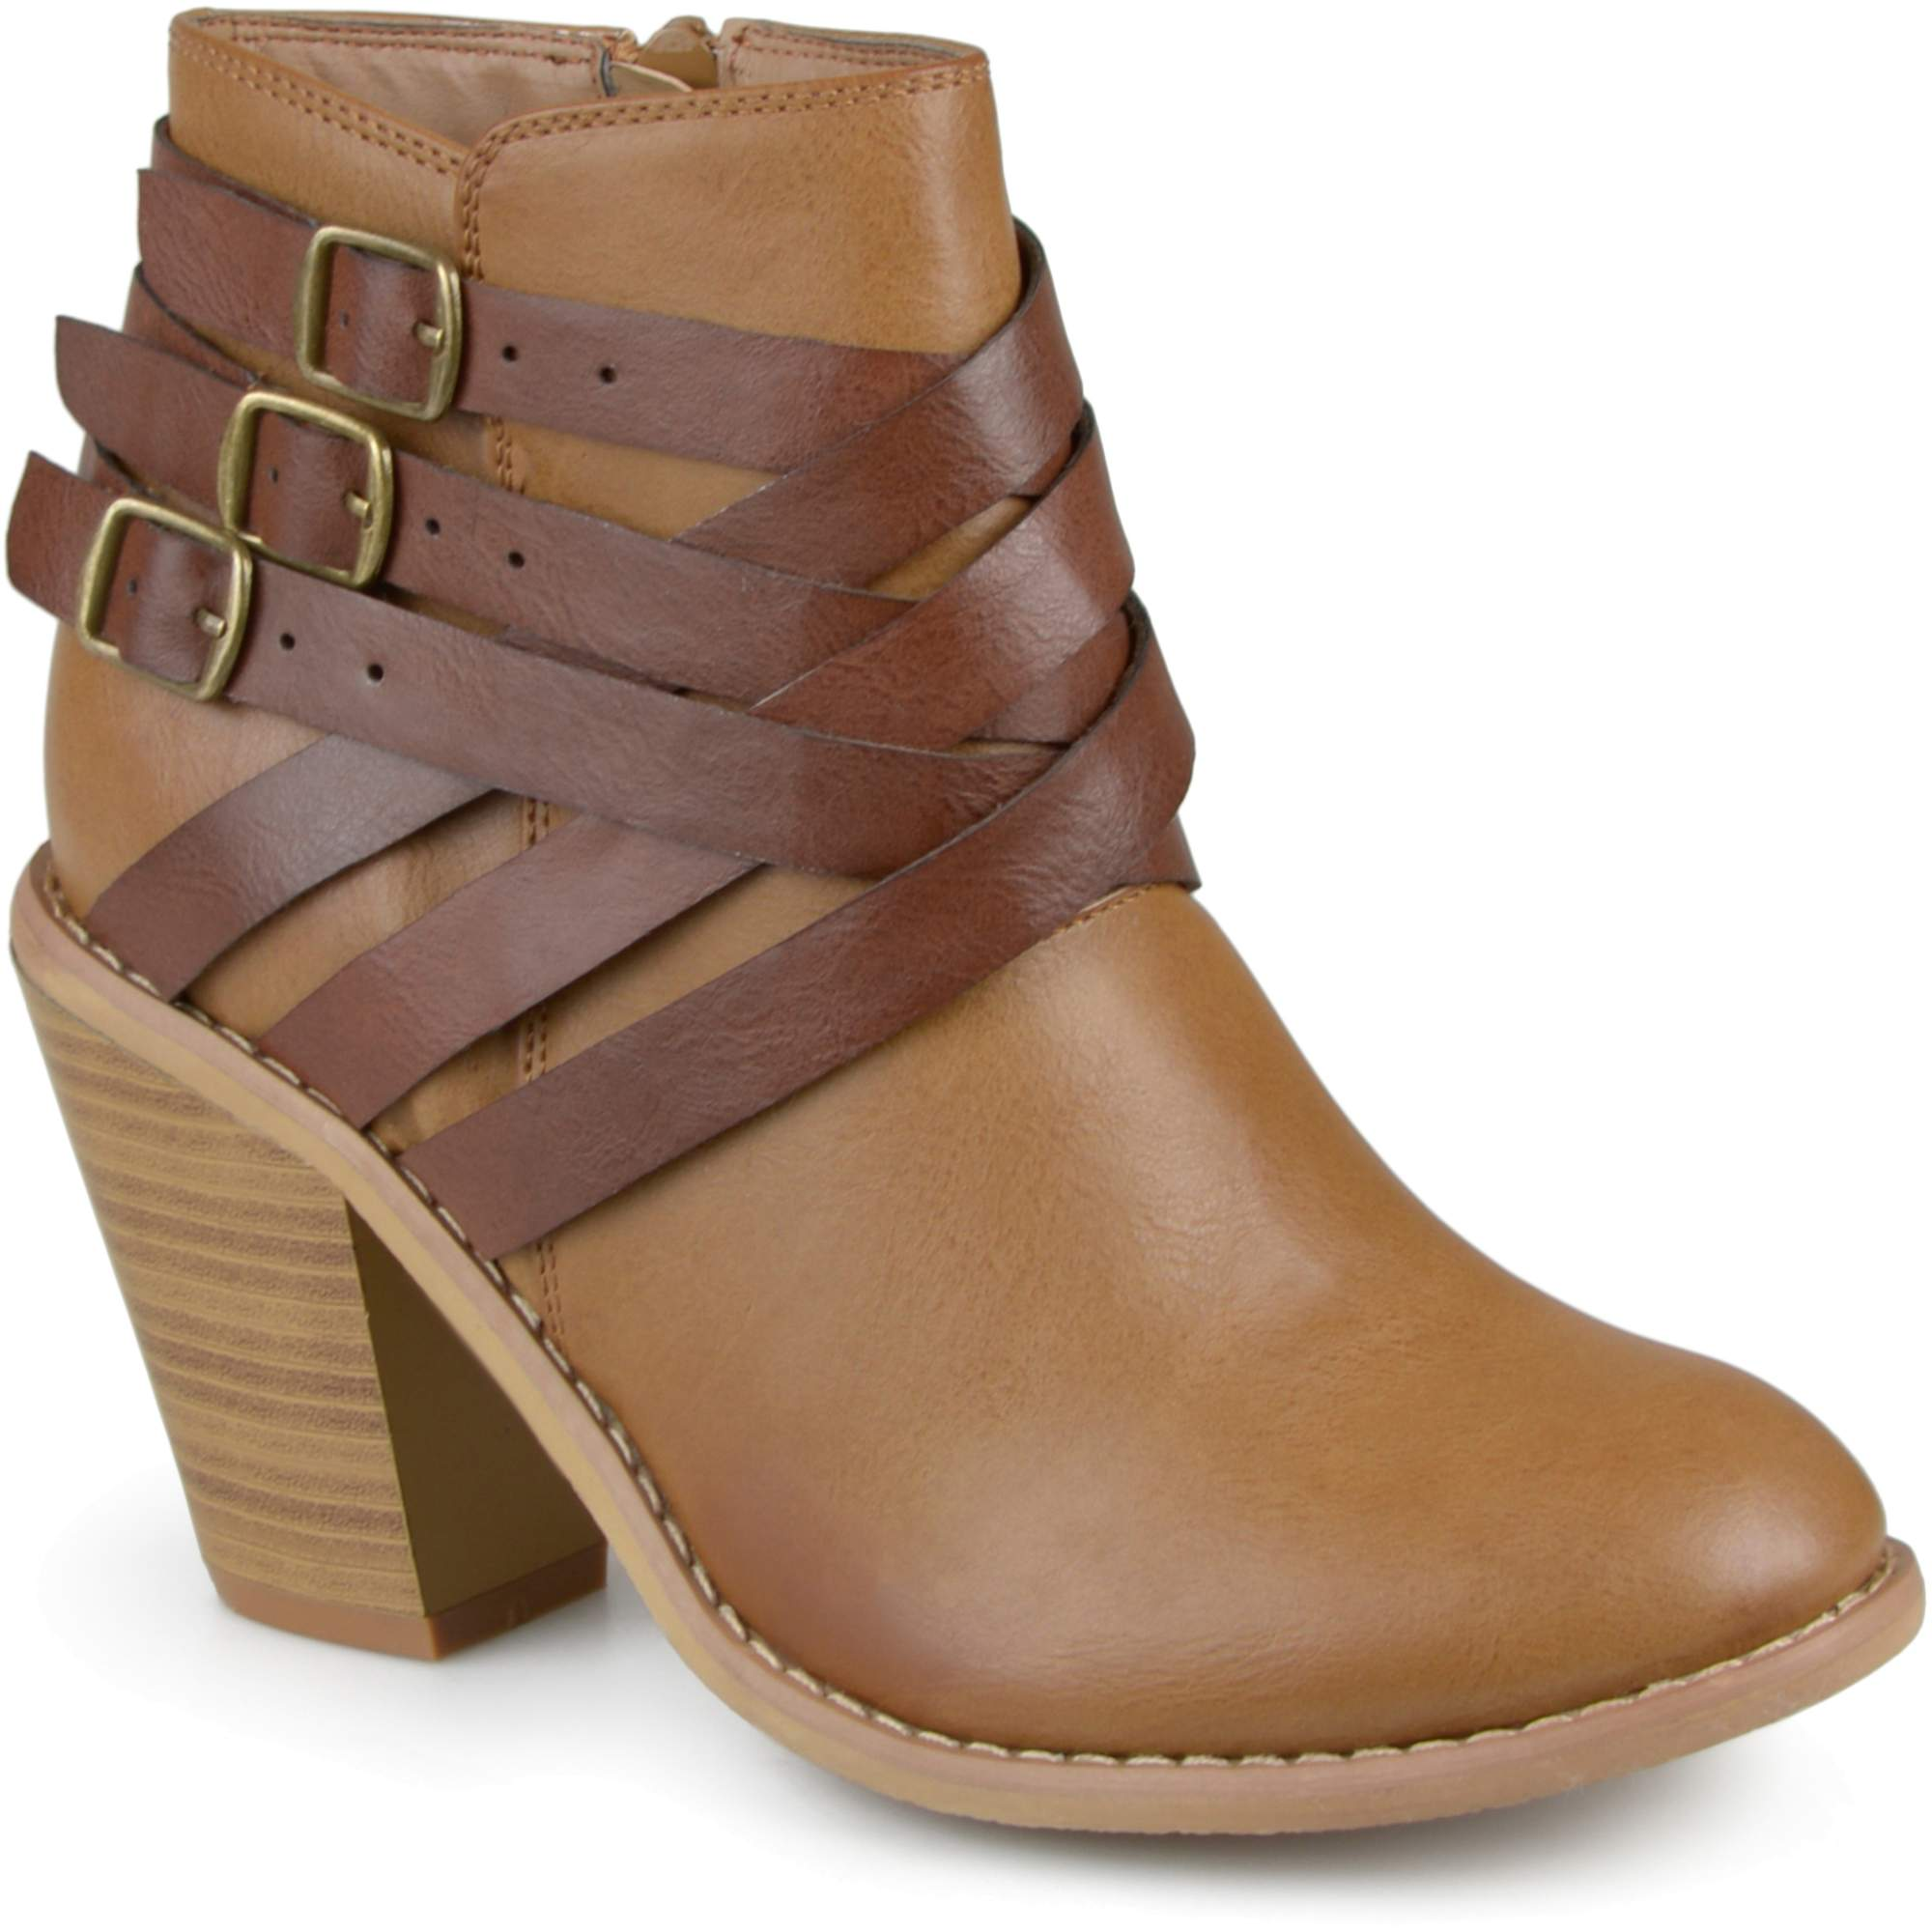 Brinley Co. Womens Ankle Wide Width Multi Strap Boots